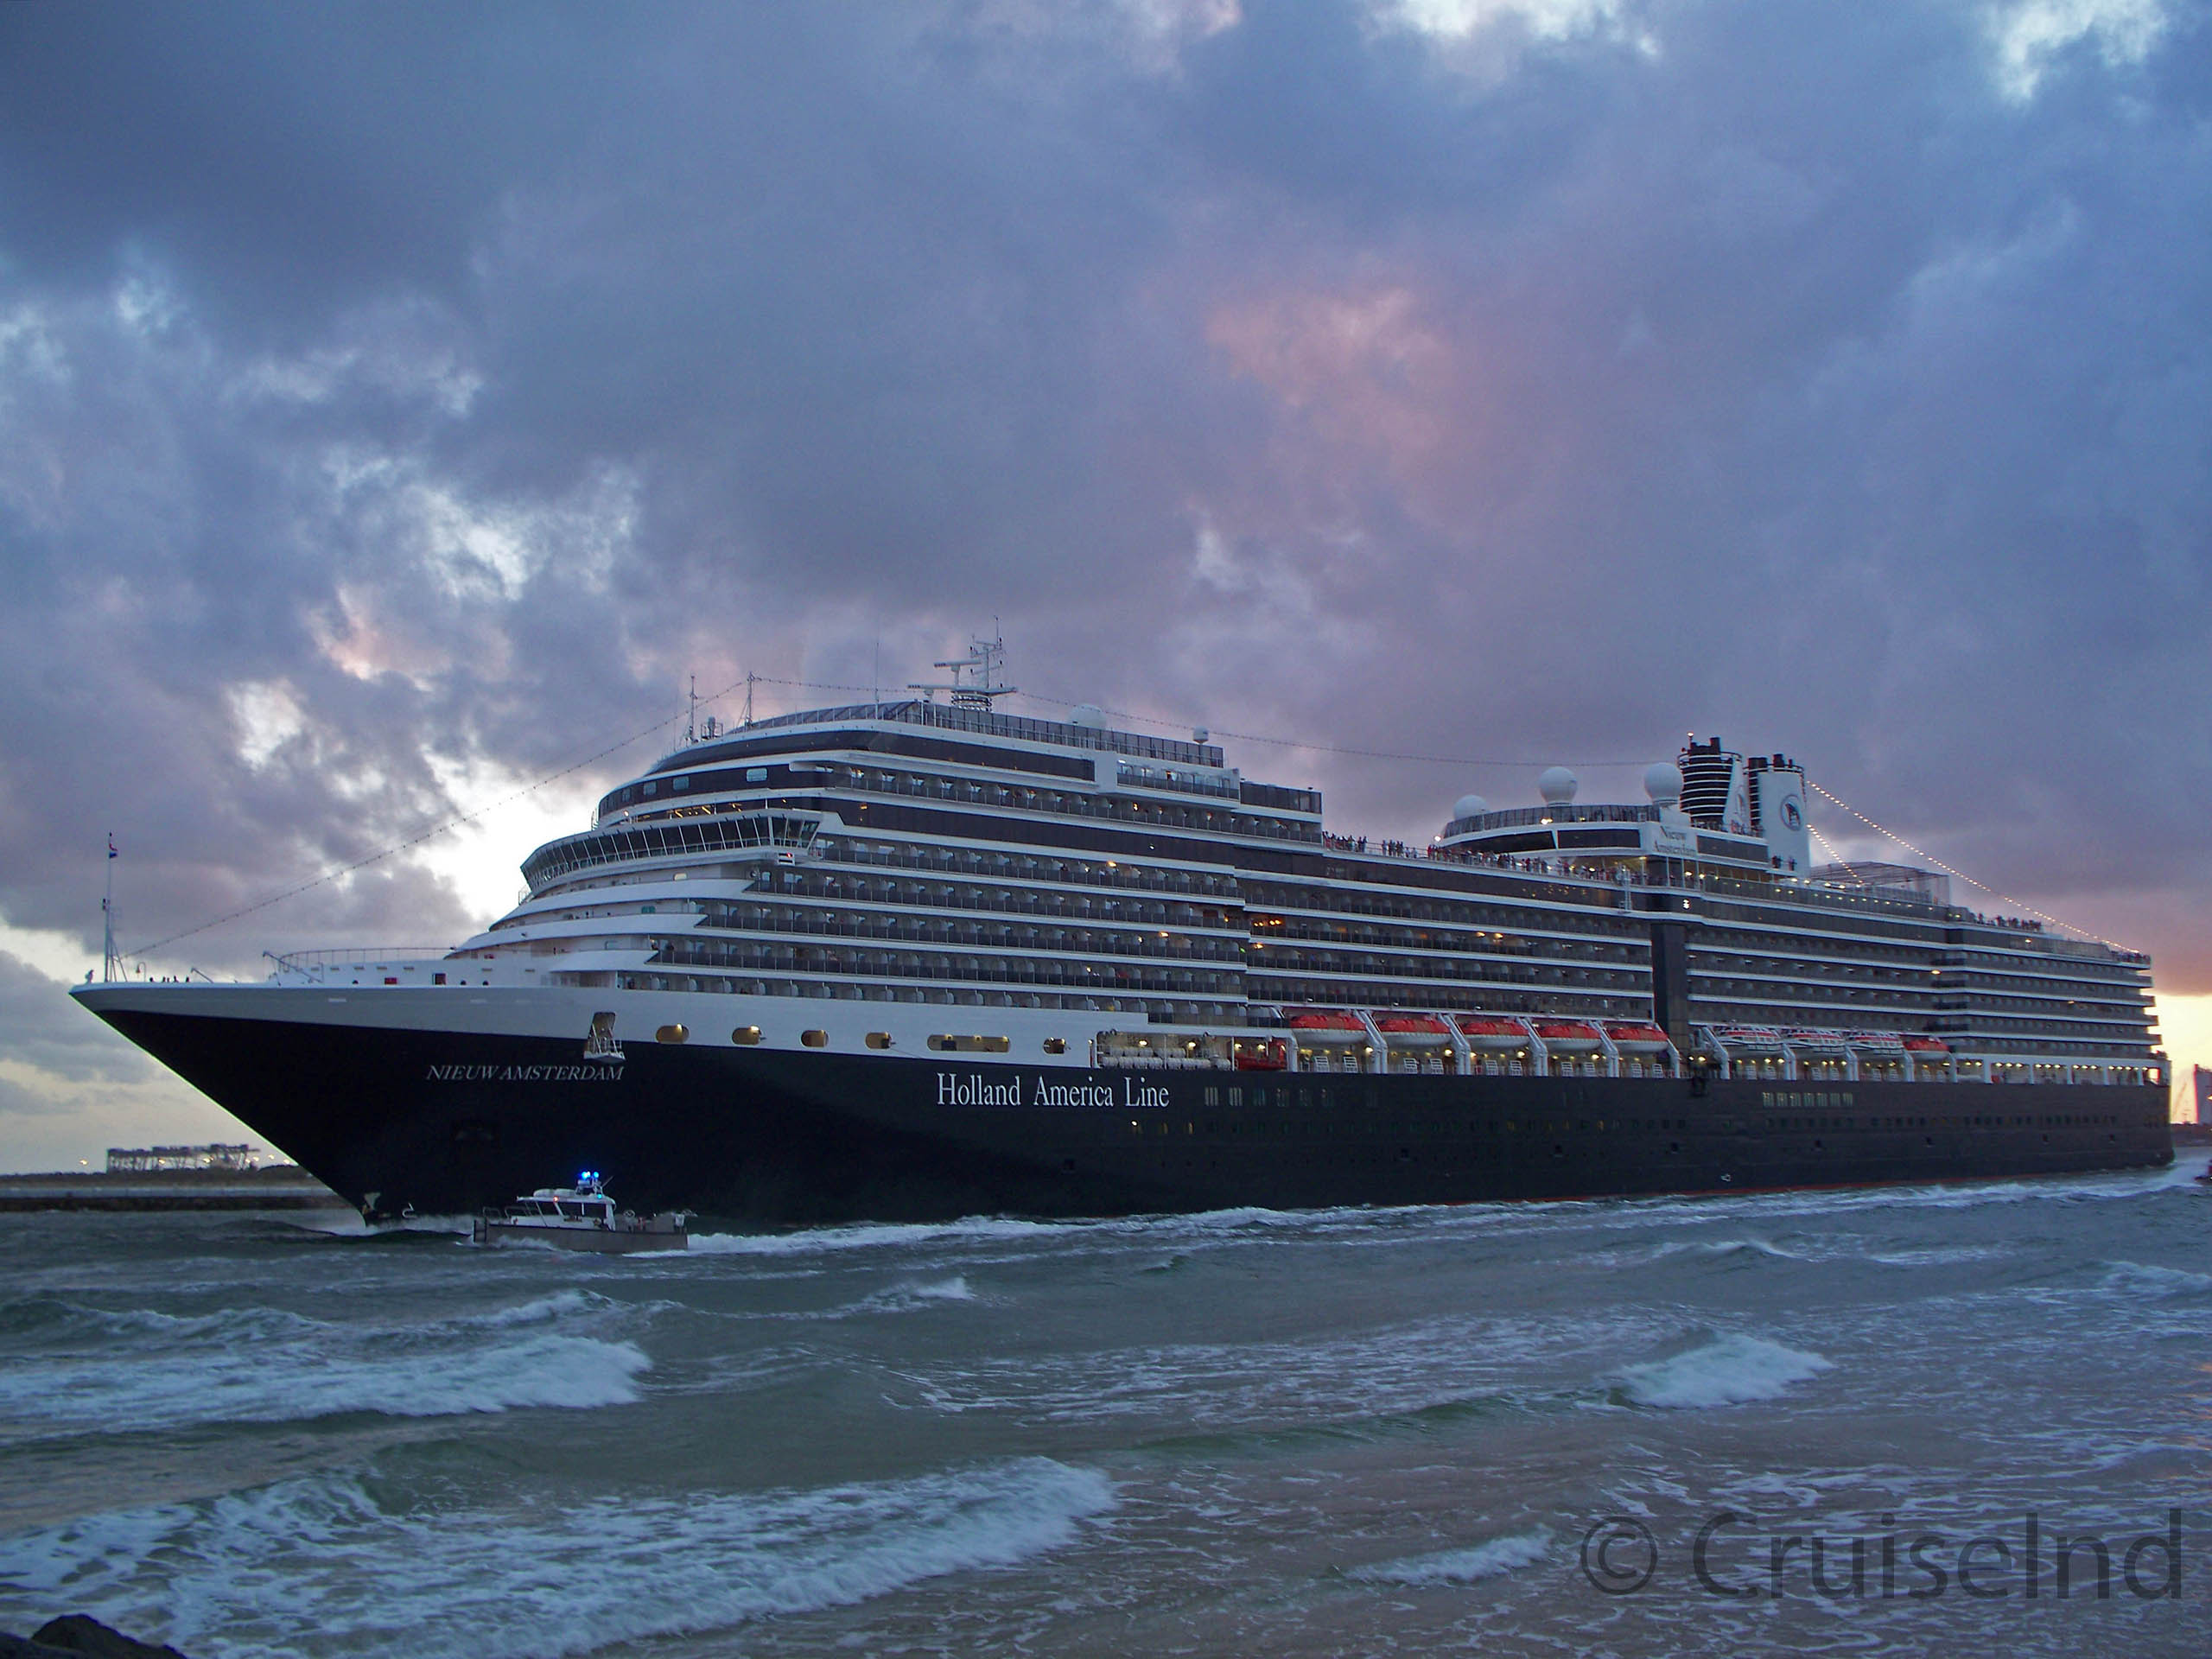 Nieuw Amsterdam departing Port Everglades ©CruiseInd